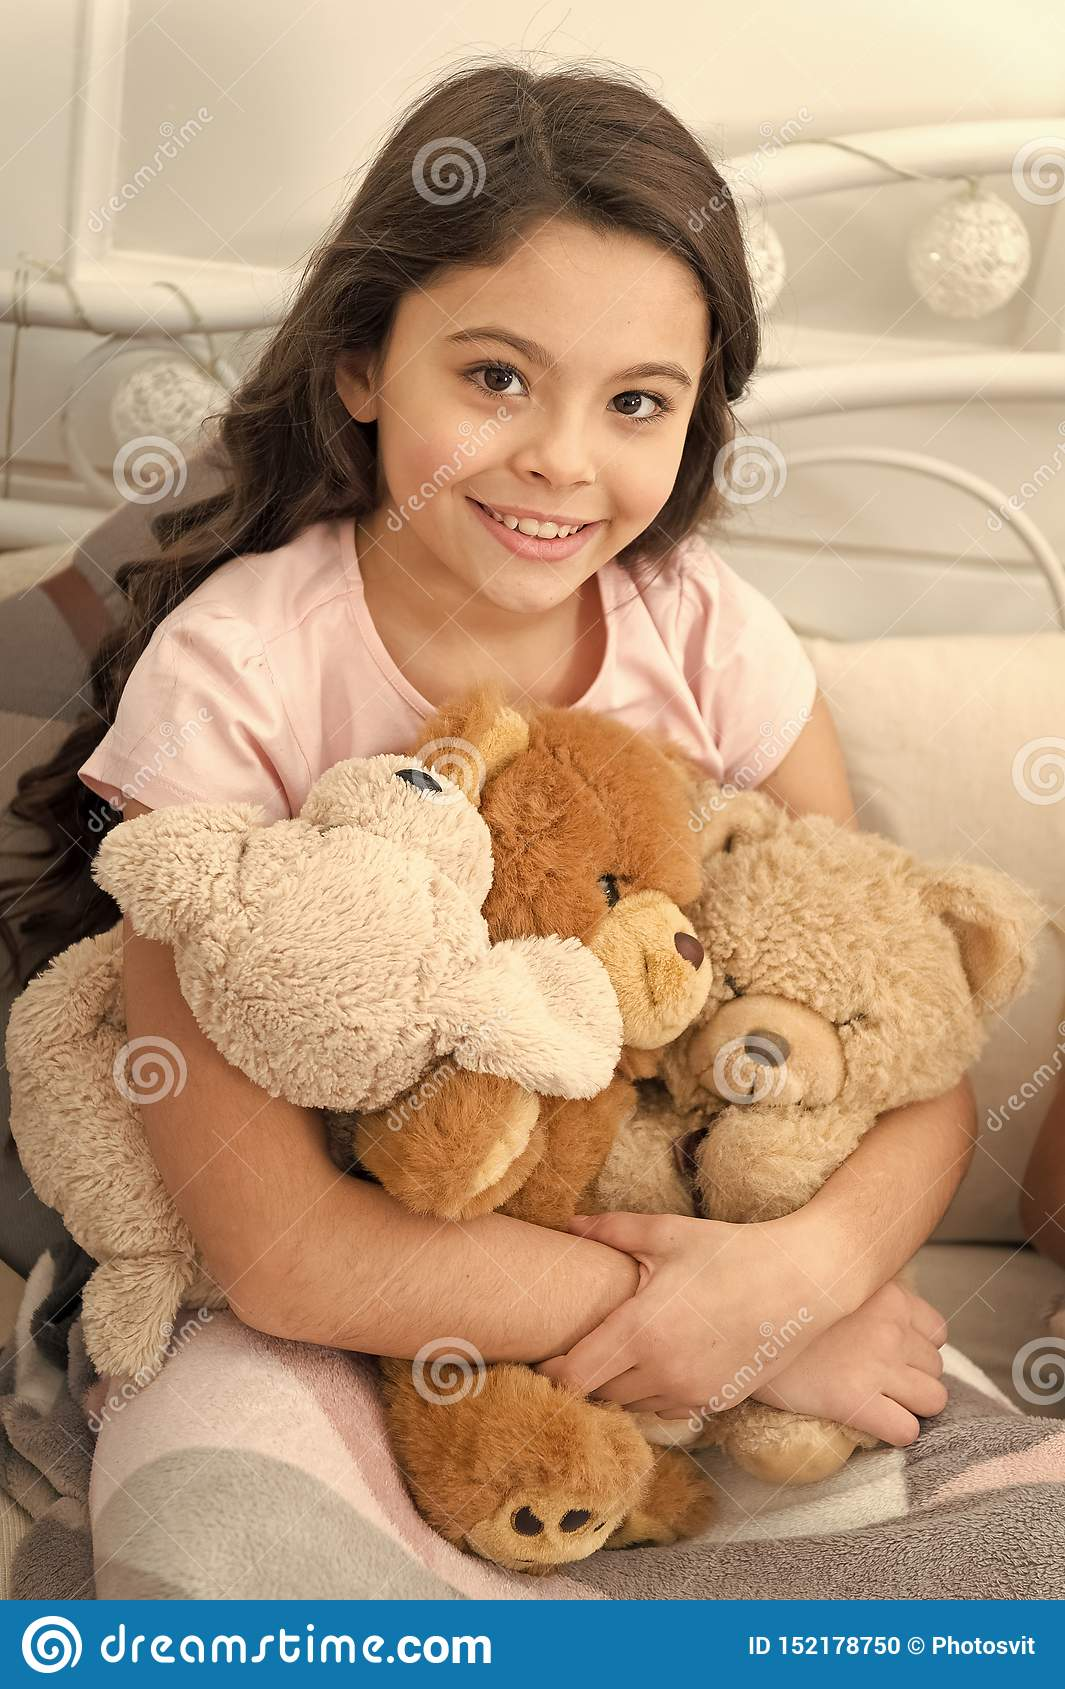 Favorite toys. Christmas gift concept. Teddy bear improve psychological wellbeing. Child small girl playful hold teddy